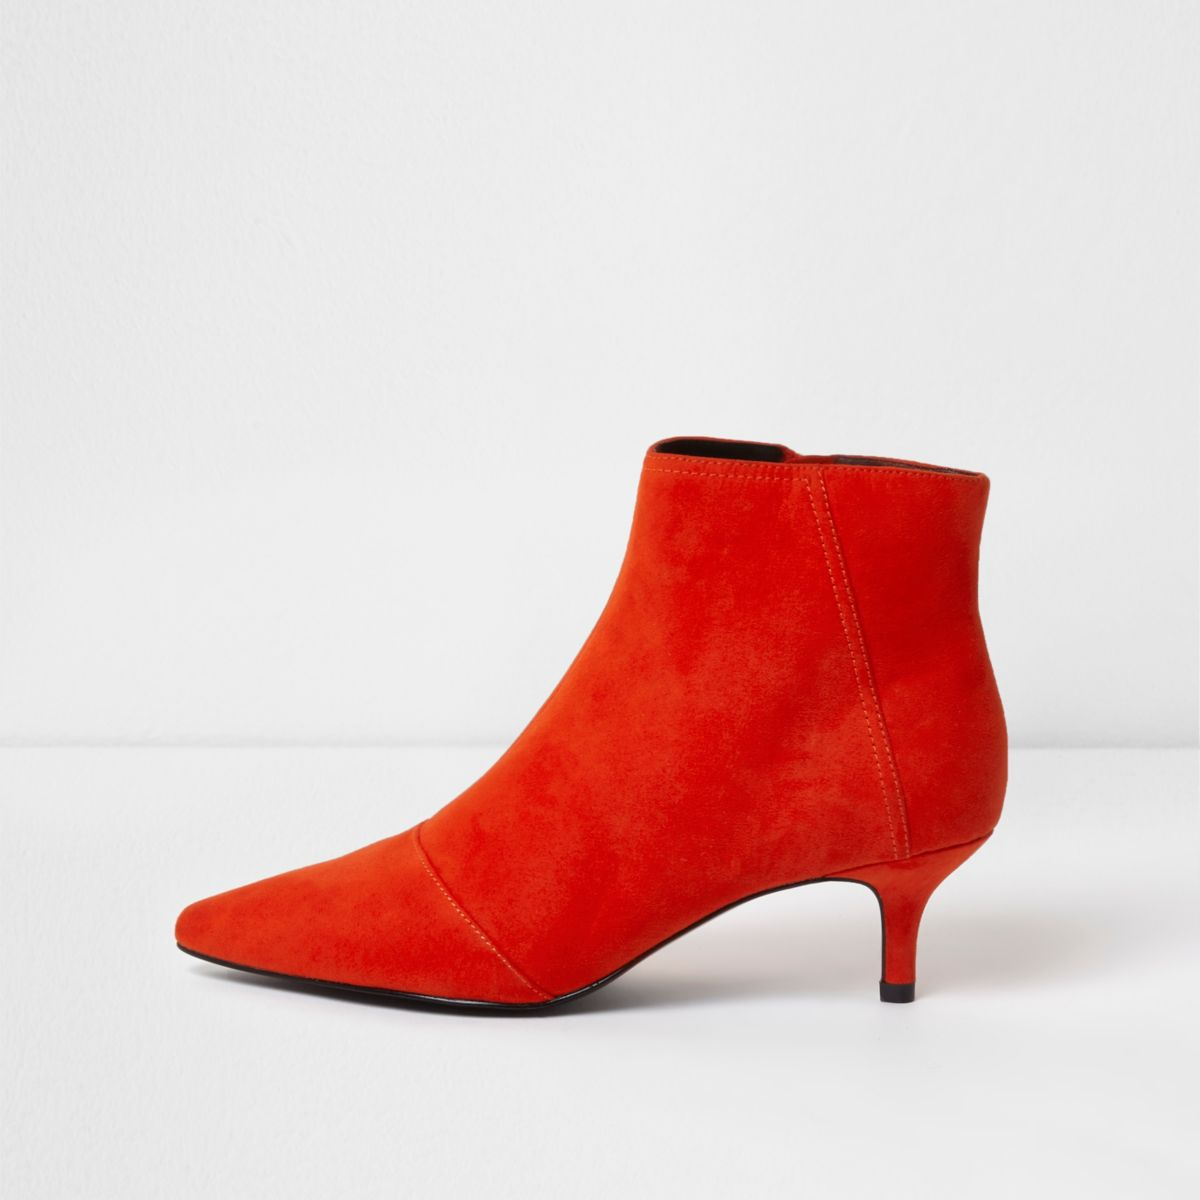 Red Low Heel Dress Shoes